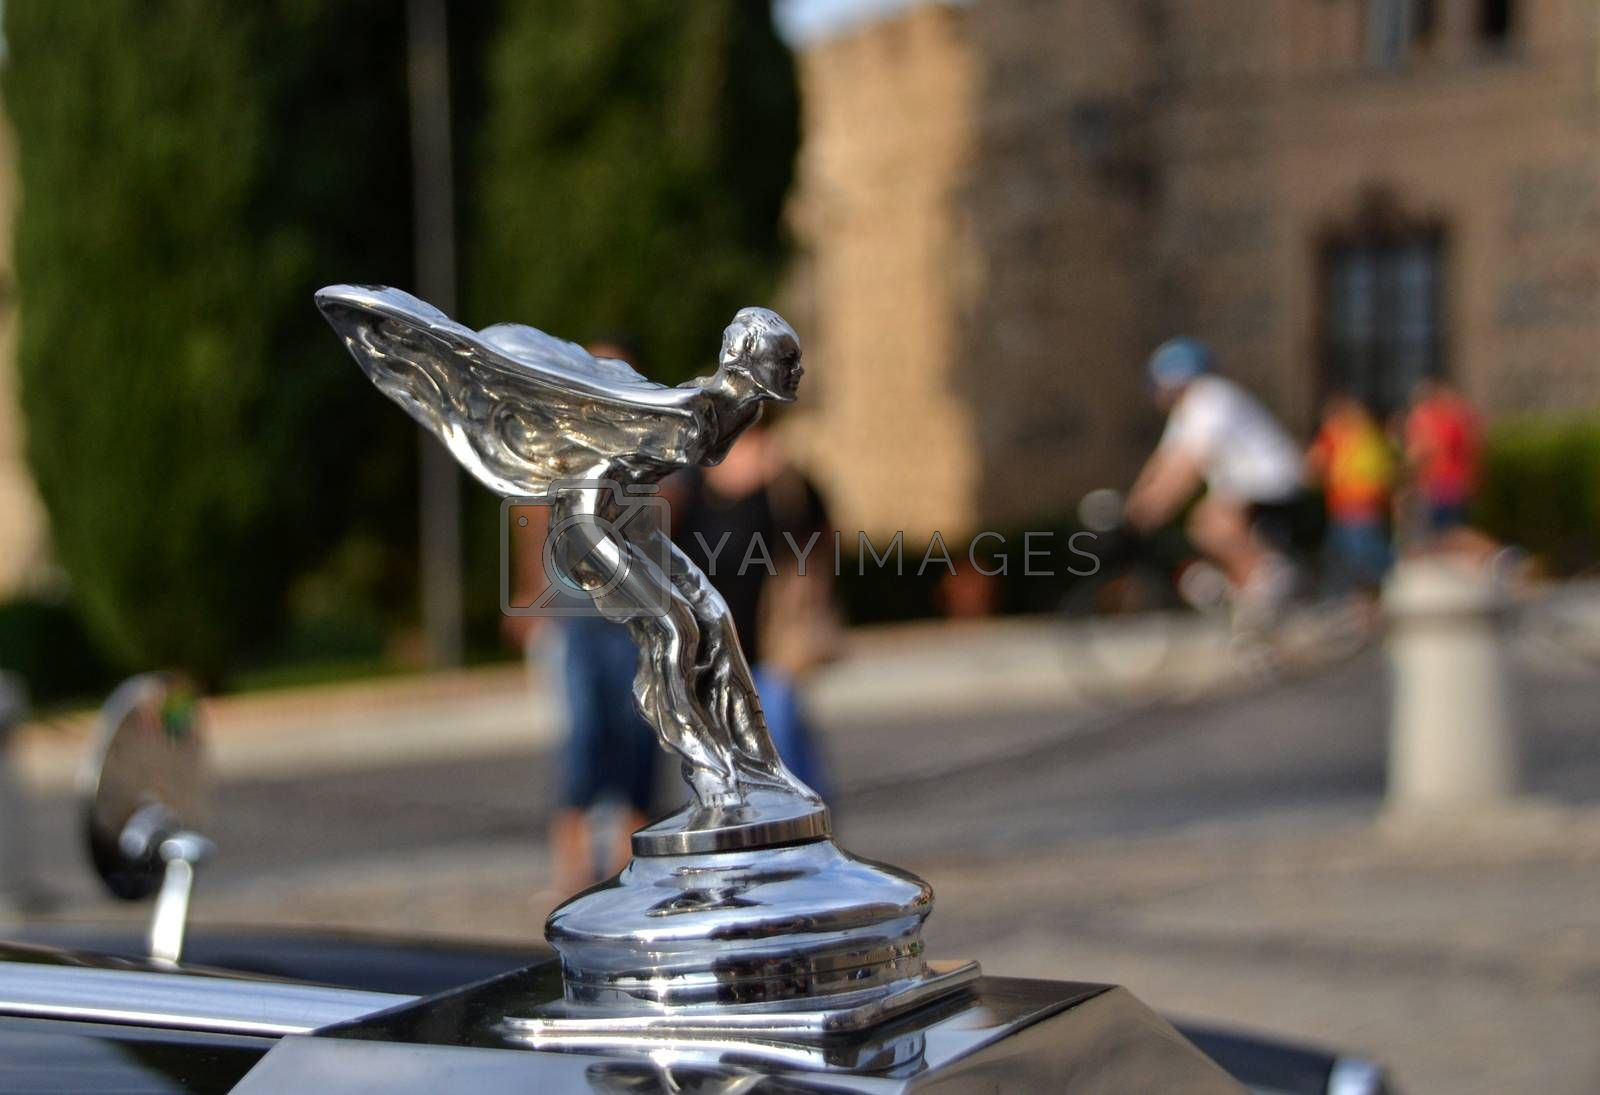 Car emblem made with the figure of a woman with wings in take-off position to fly